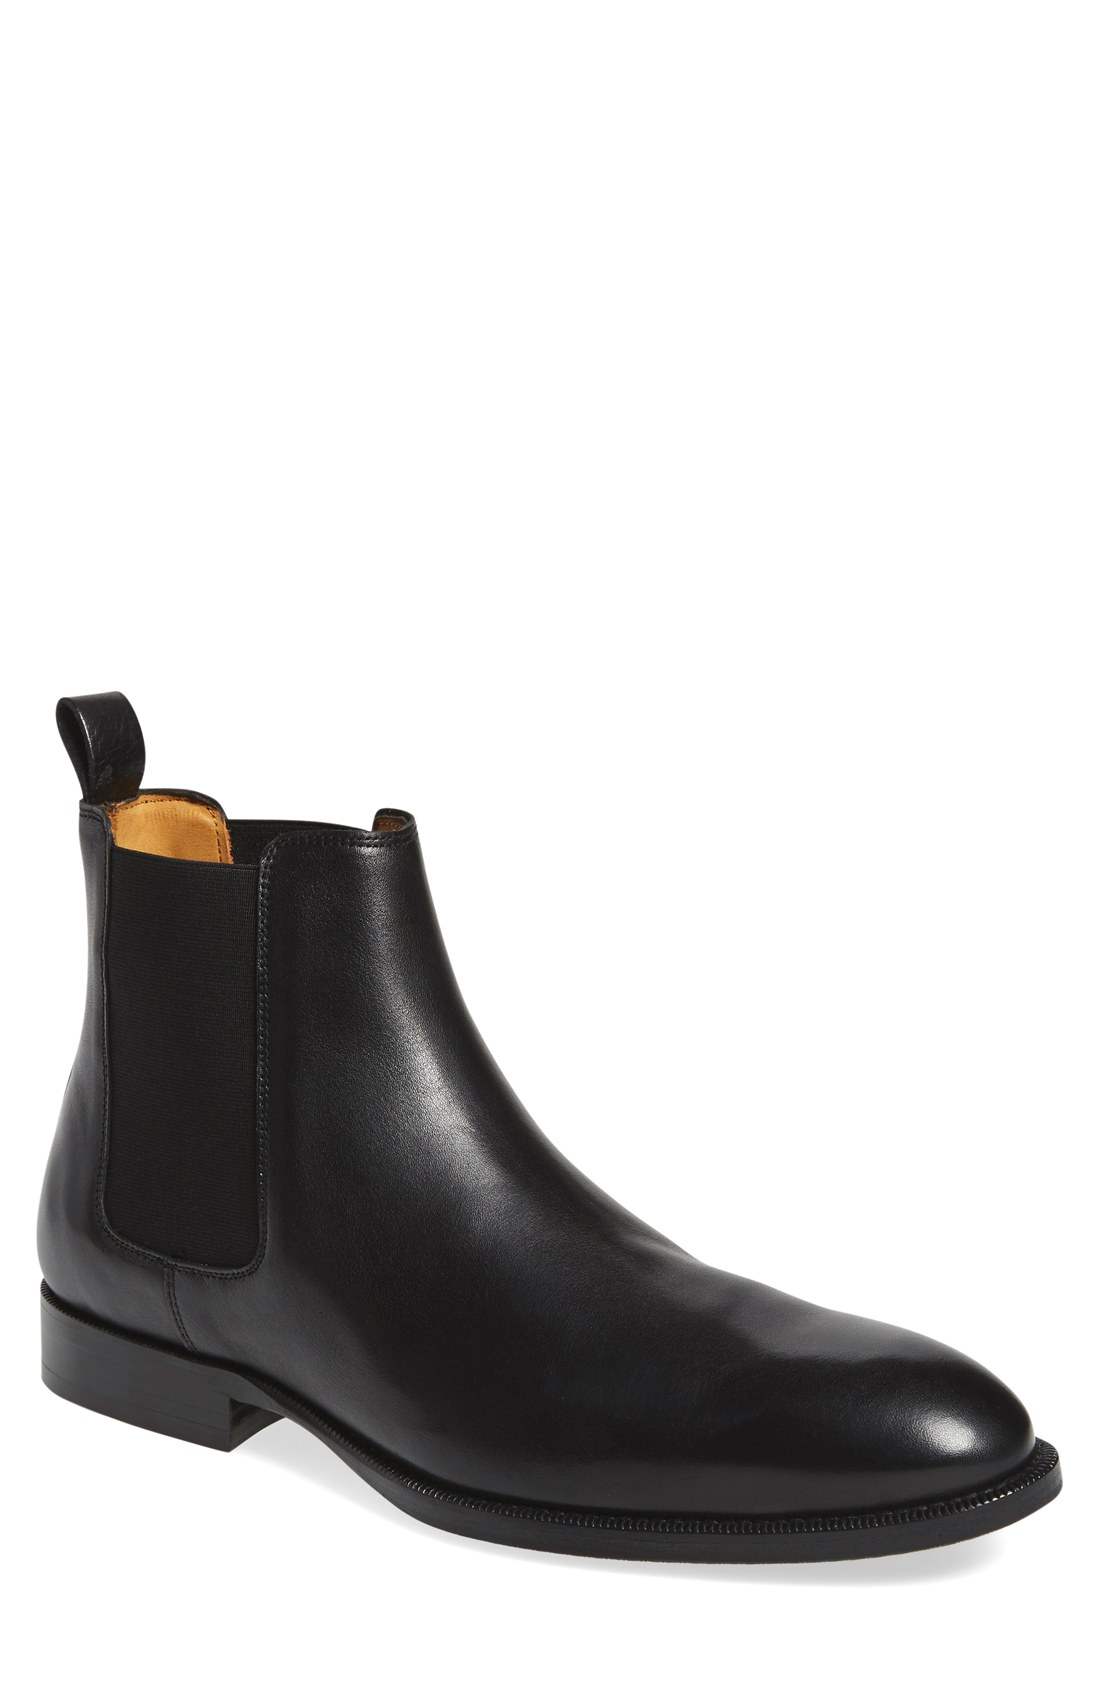 Mens Leather Chelsea Boots KUXAkokf